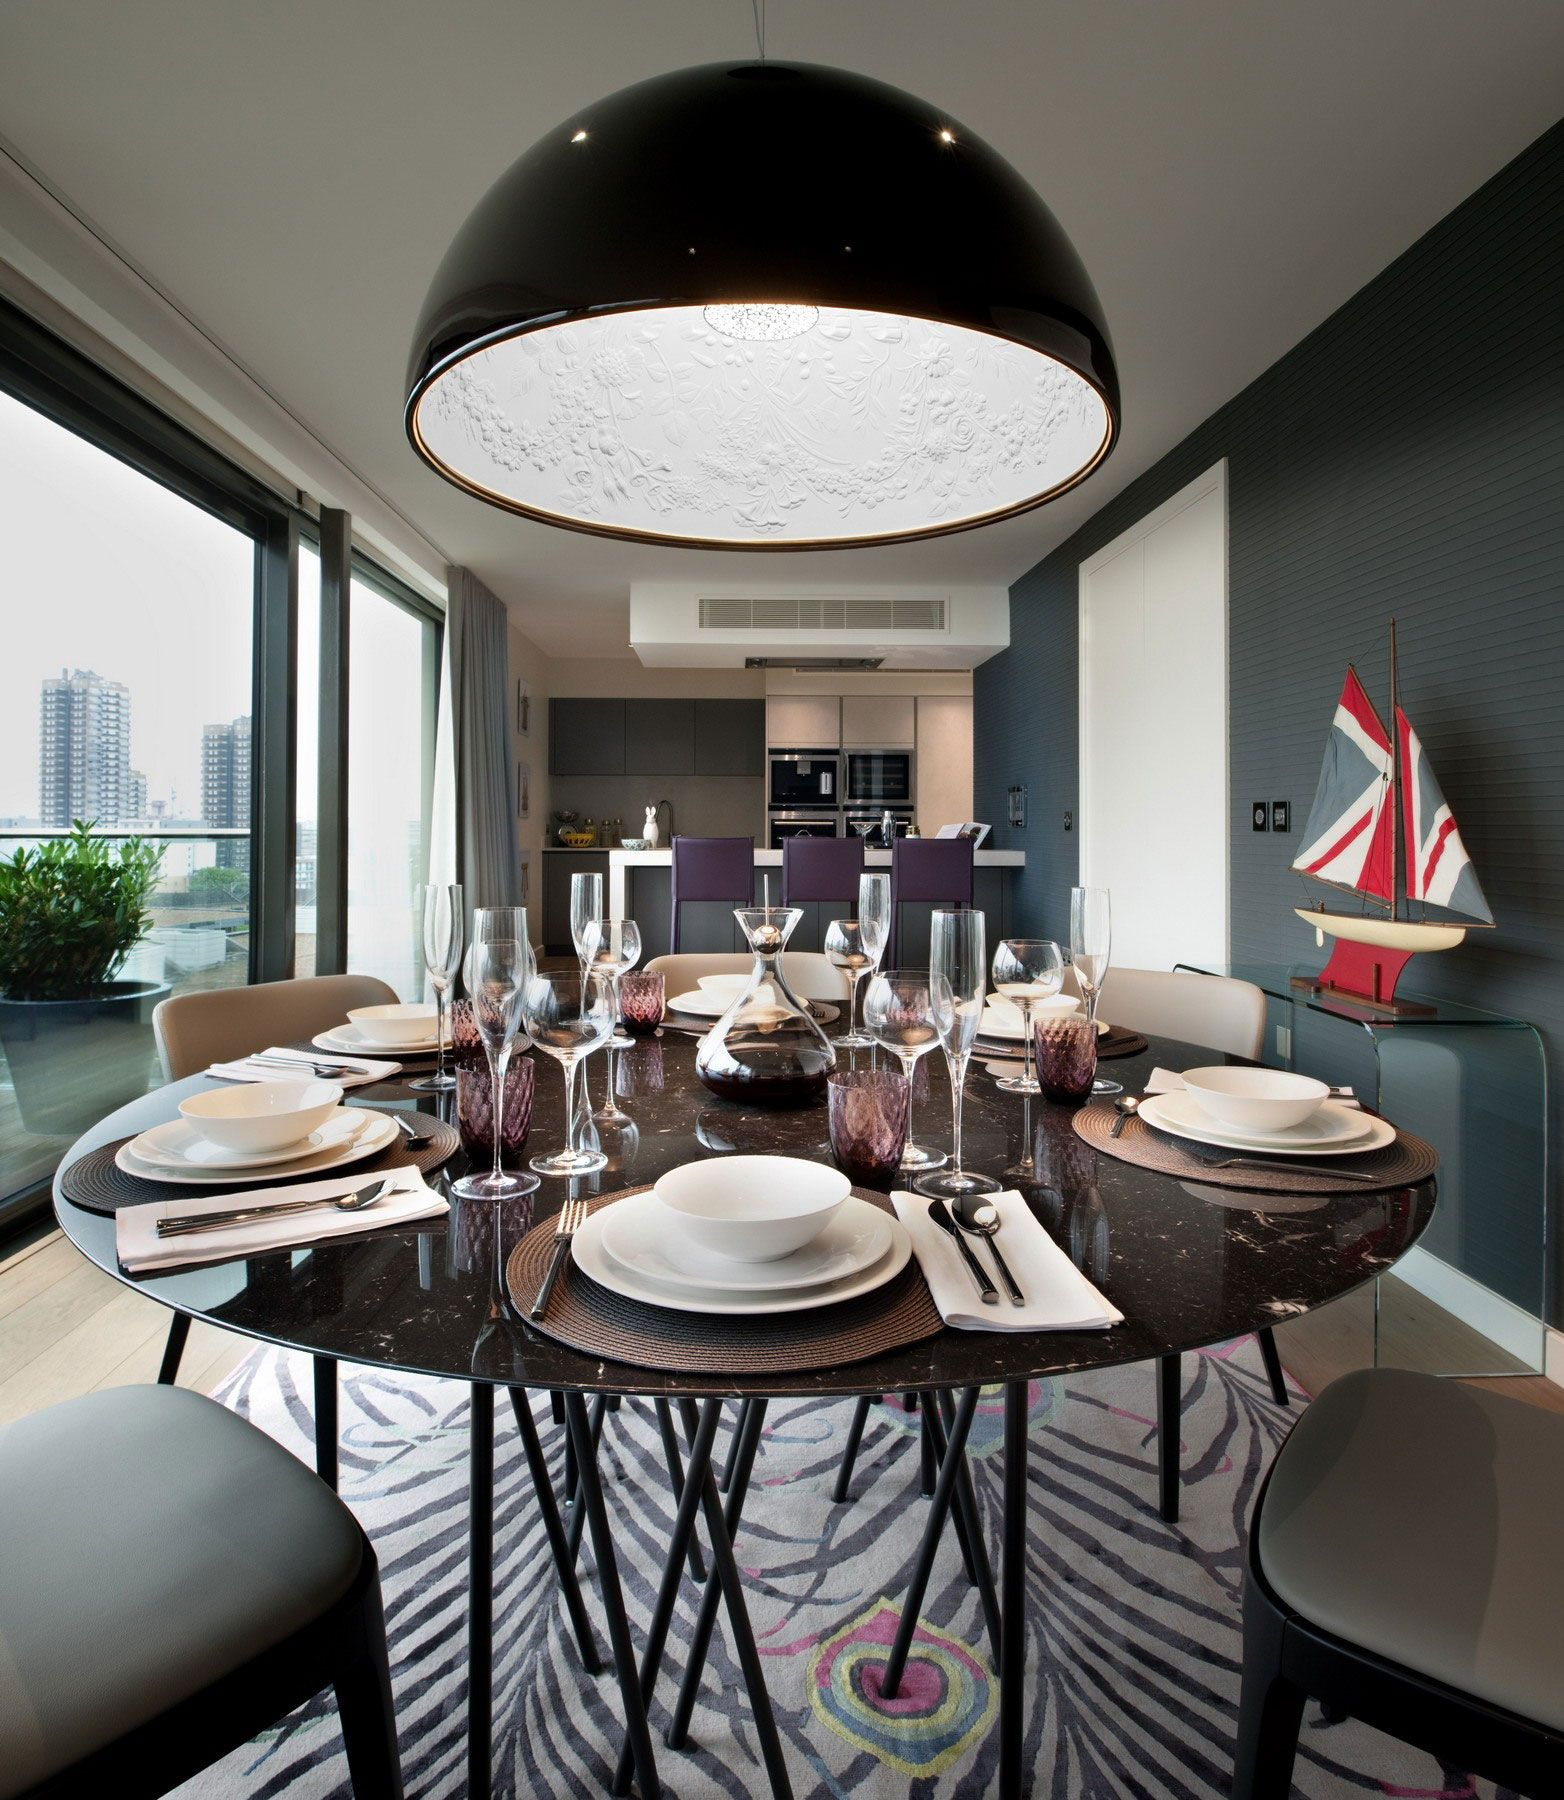 Leman Street Is A Residential Project Located In London EnglandIt Was Completed By TG STUDIO